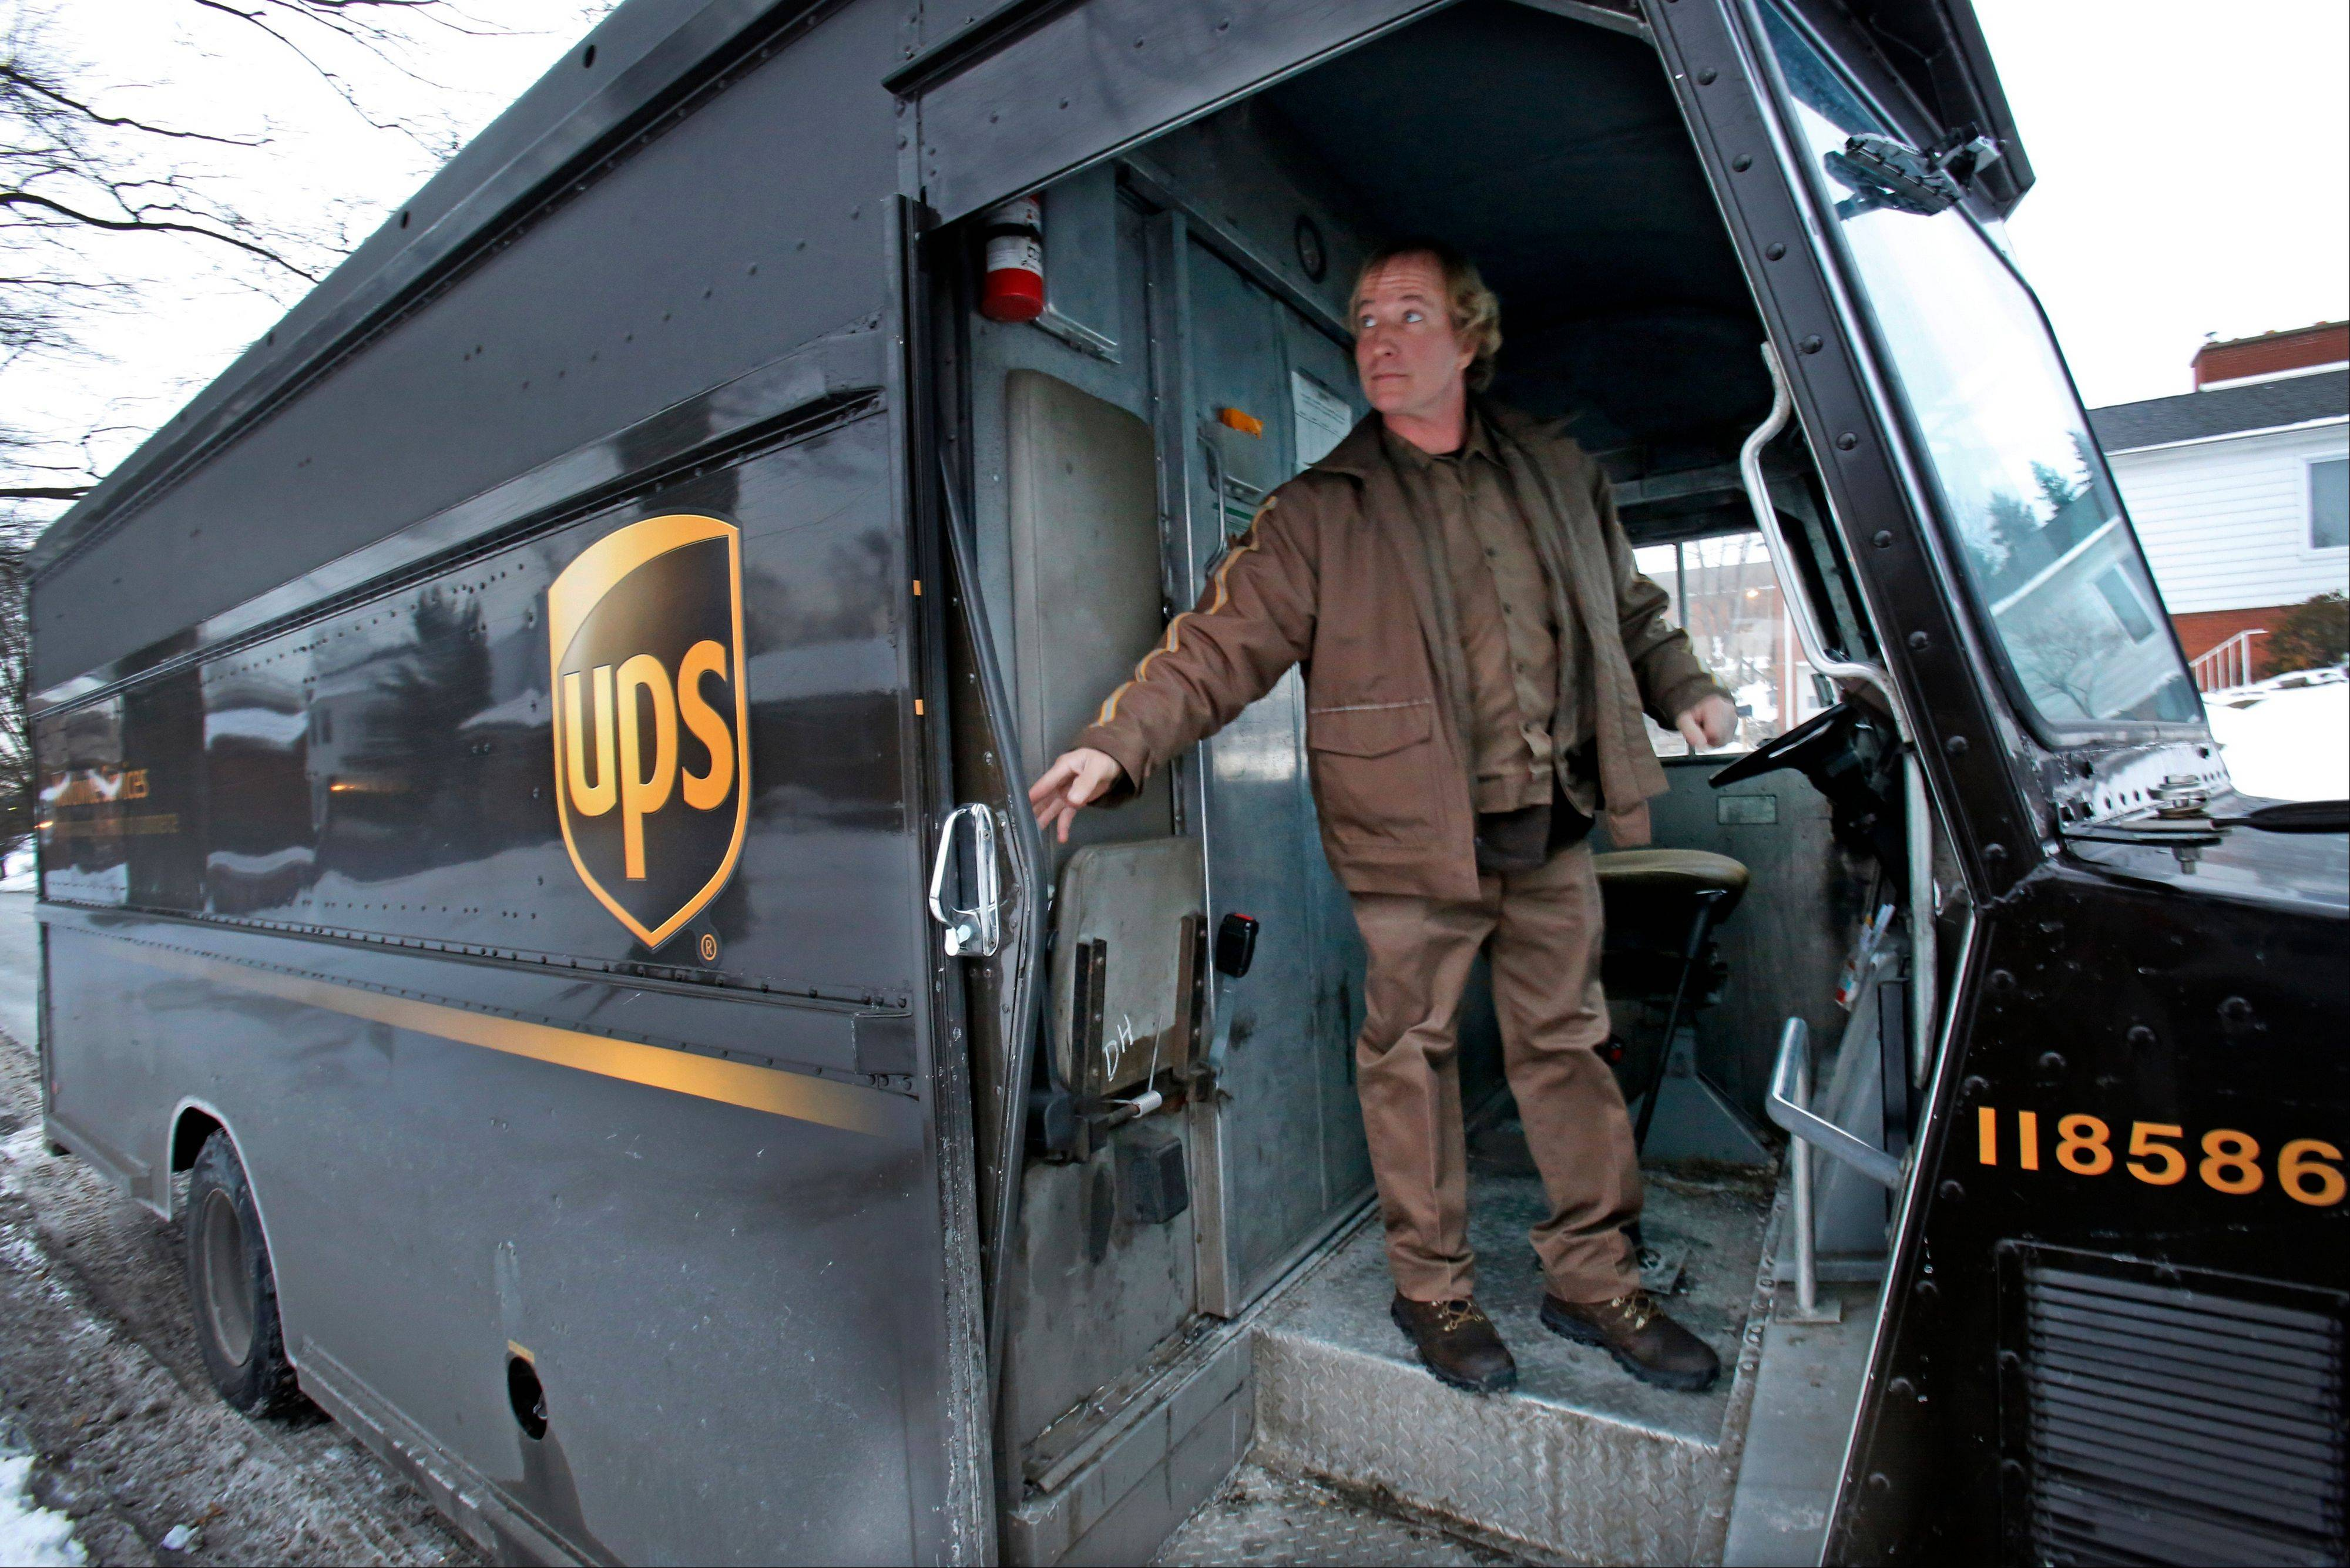 United Parcel Service Inc. said it will spend more than $100 million to improve peak-period service after a late surge in online Christmas shopping caused missed deliveries that boosted costs.